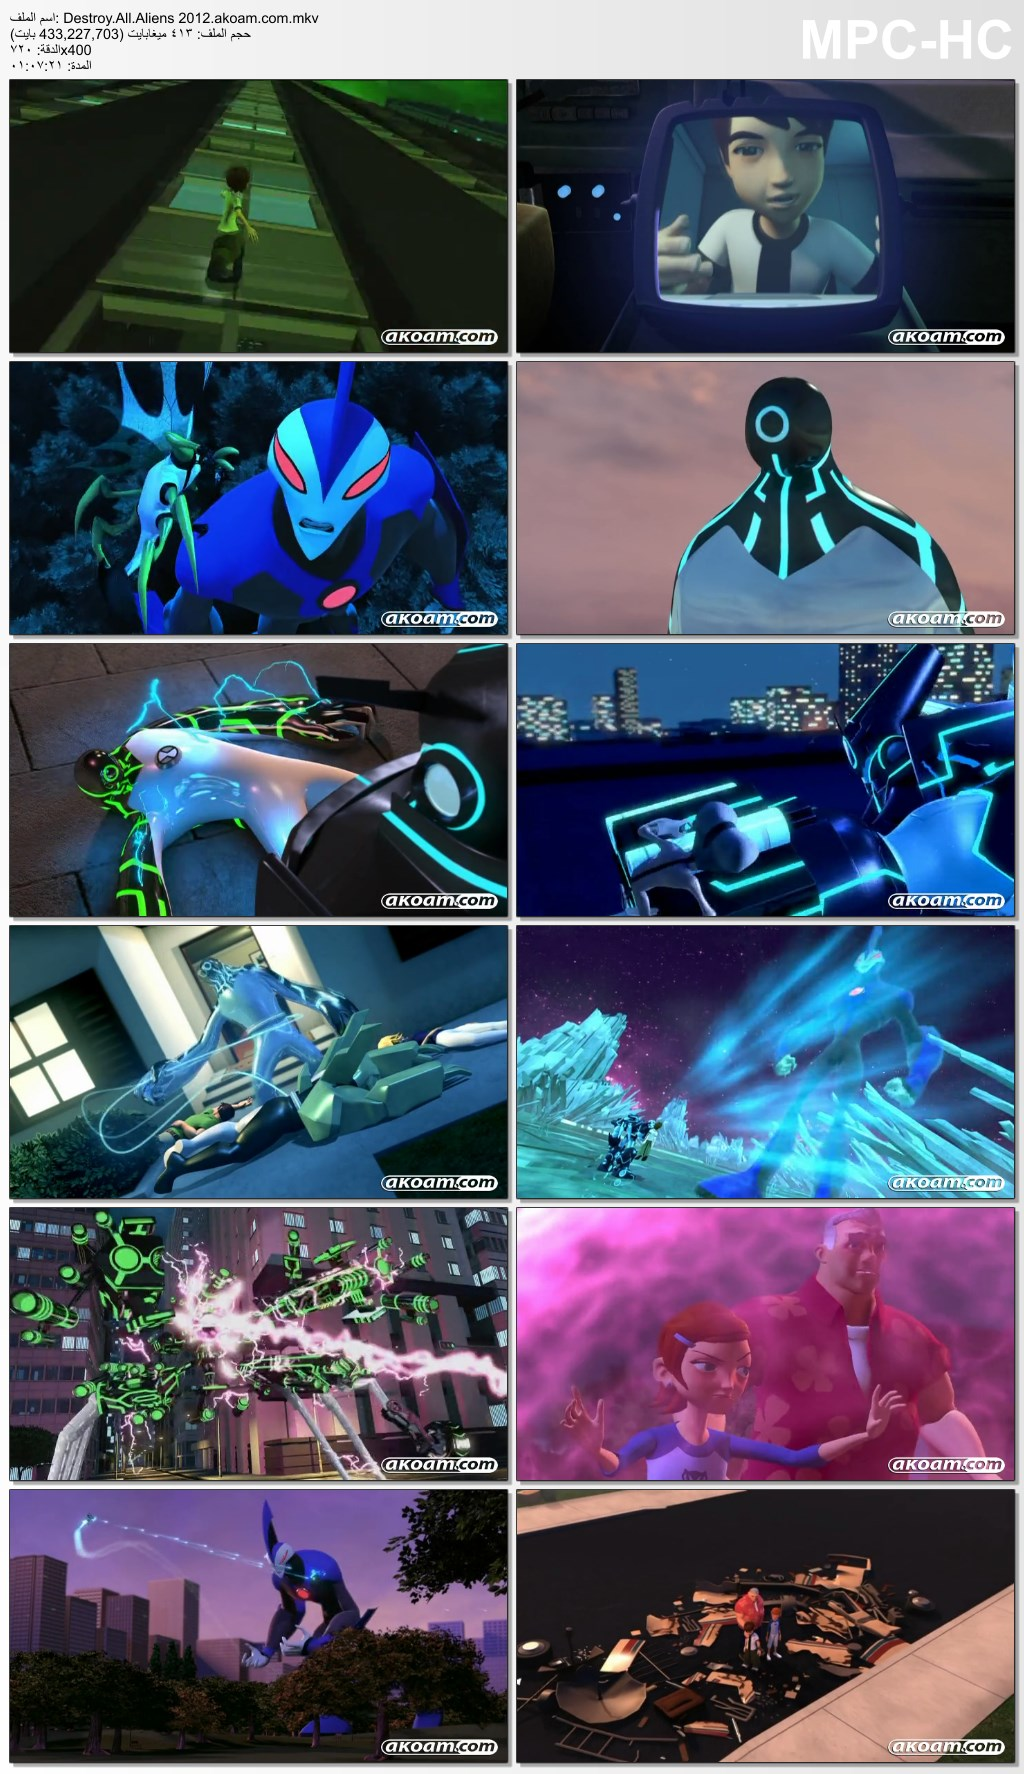 Ben 10: Road Trip Rumble,Ben 10: Secret of the Omnitrix,Ben 10: Race Against Time,Ben 10: Alien Swarm,Ben 10: Destroy All Aliens,Ben 10,بن تن